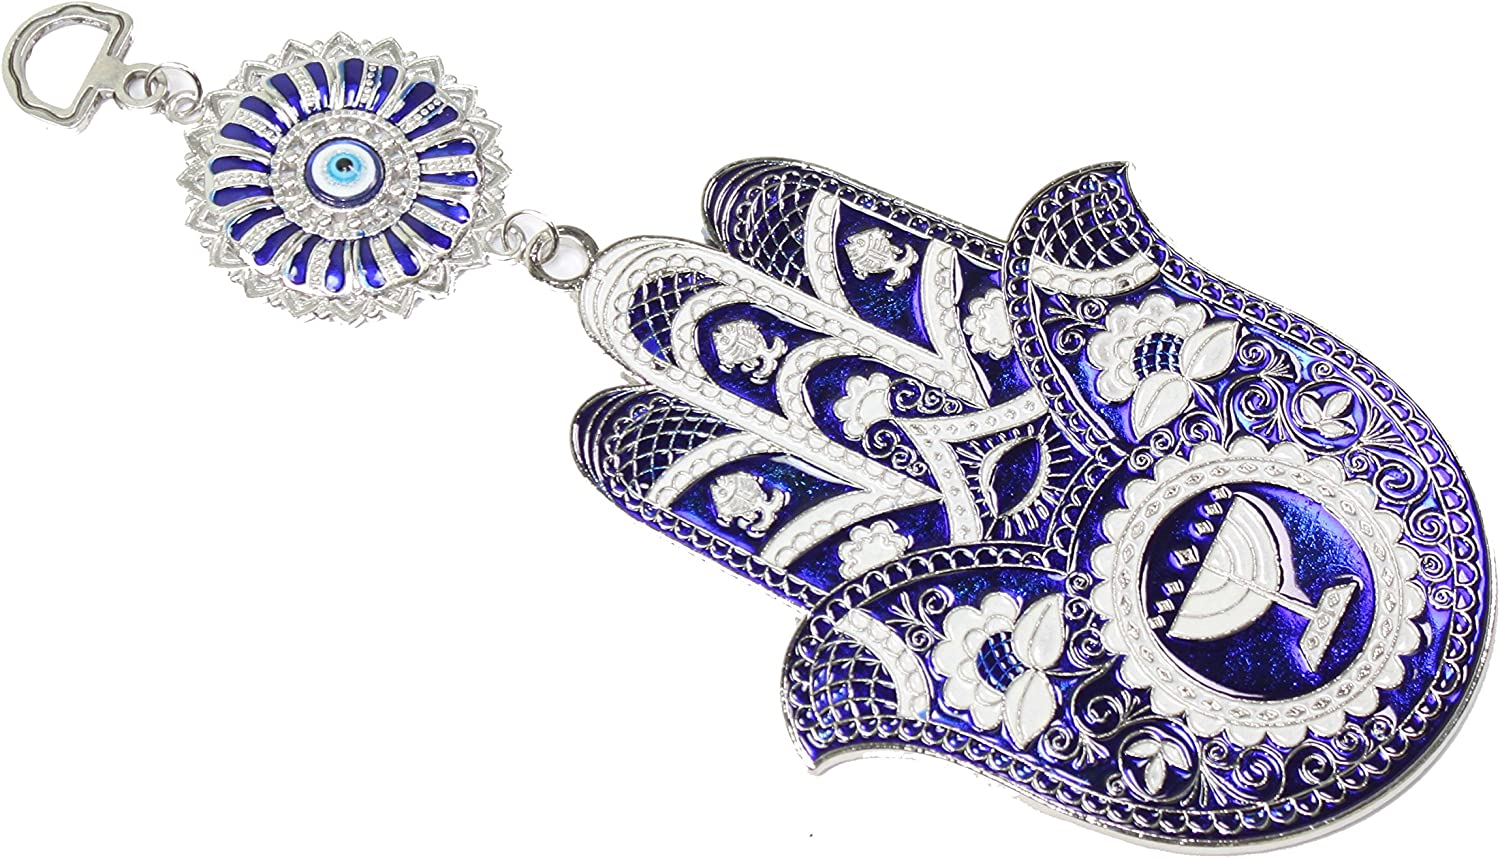 Turkish Blue Evil Eye (Nazar) Hamsa Hand Elephant Amulet Wall Hanging Home Decor Protection Blessing Housewarming Birthday Gift